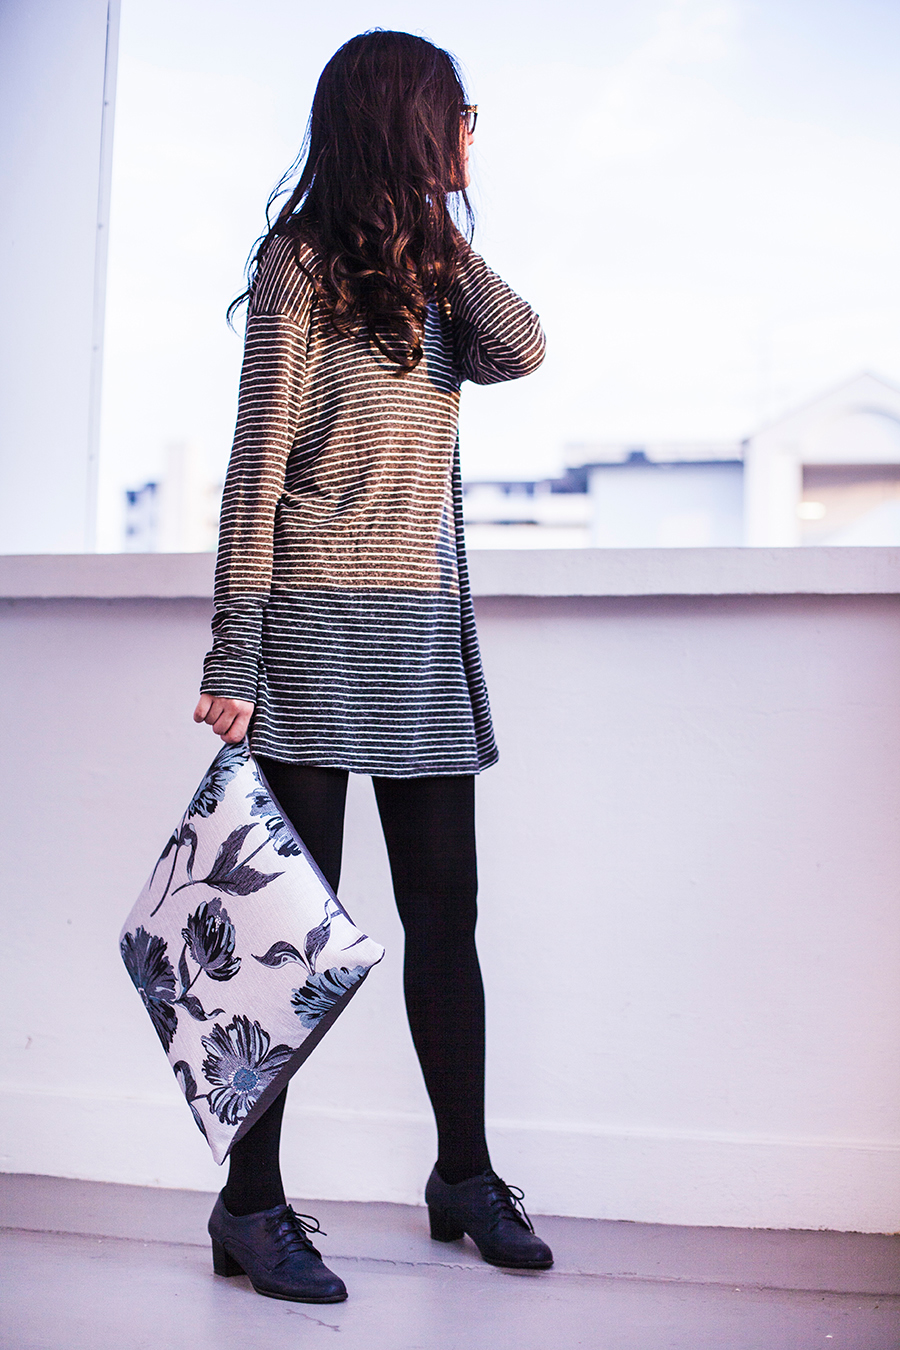 Outfit details: Zara striped tunic dress, Forever 21 black tights, Taobao navy blue oxford heels, Gap black rimmed glasses.